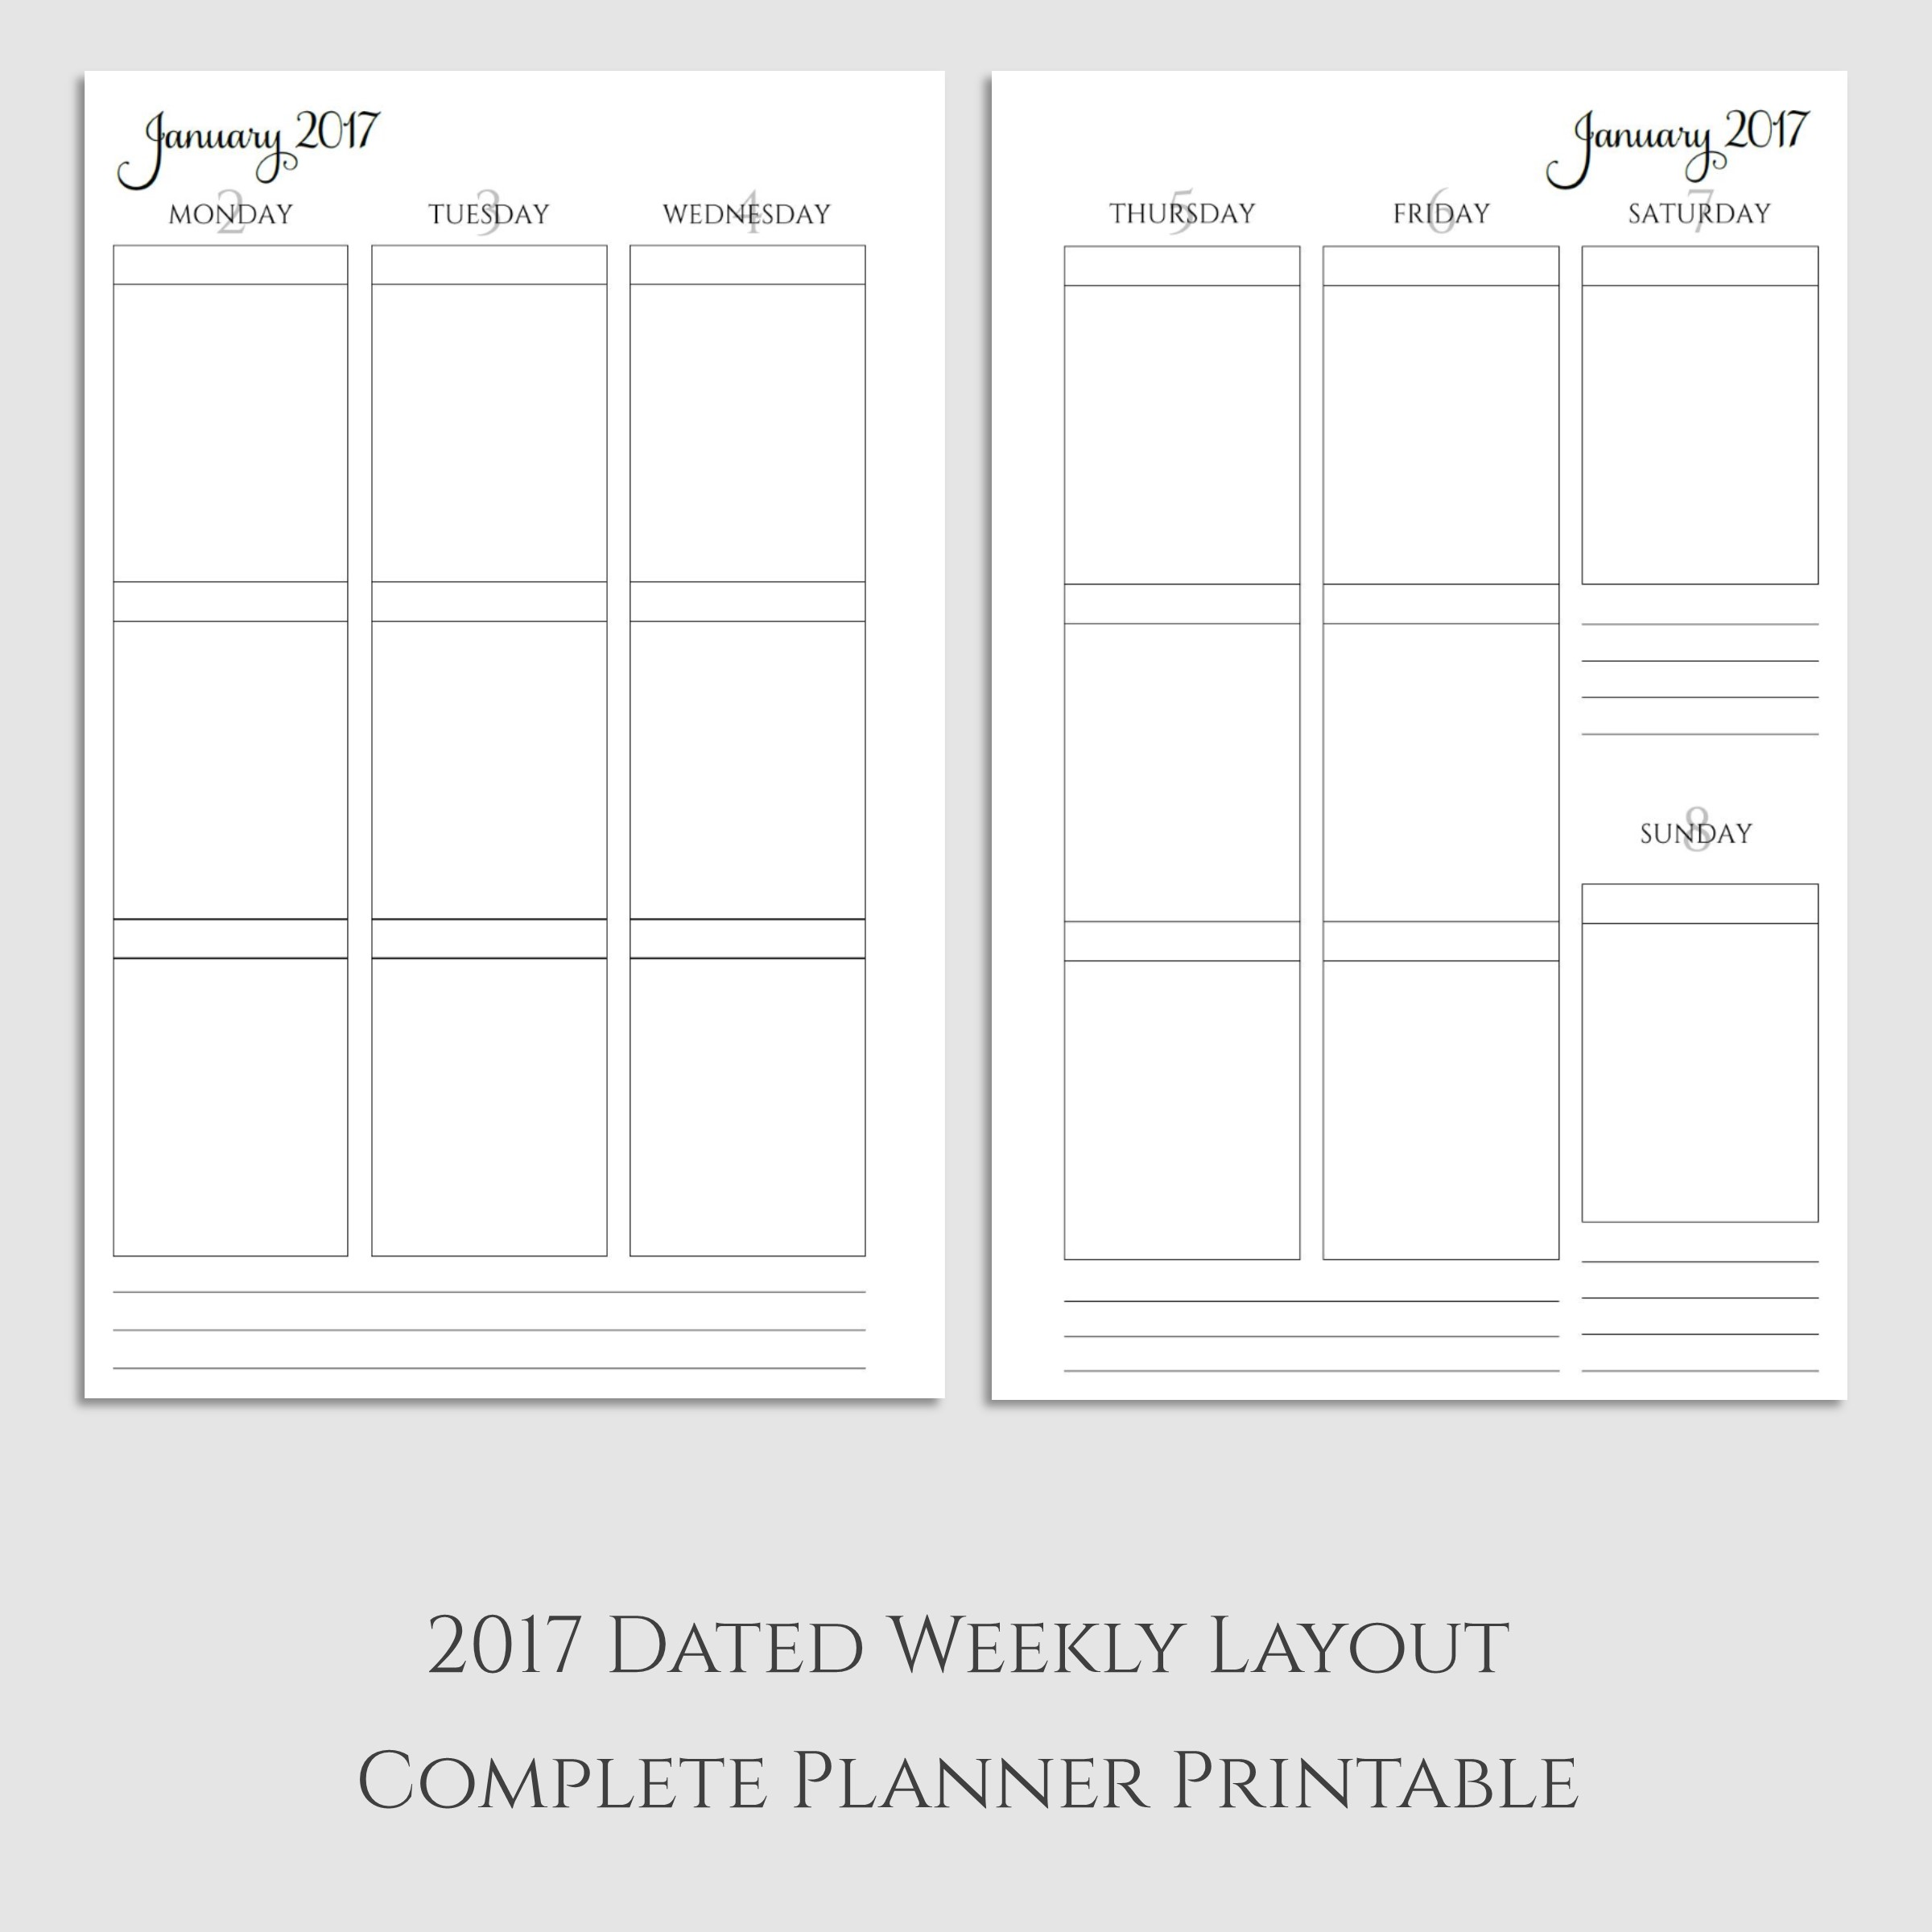 Complete 2017 Weekly Vertical Boxes Planner Printable